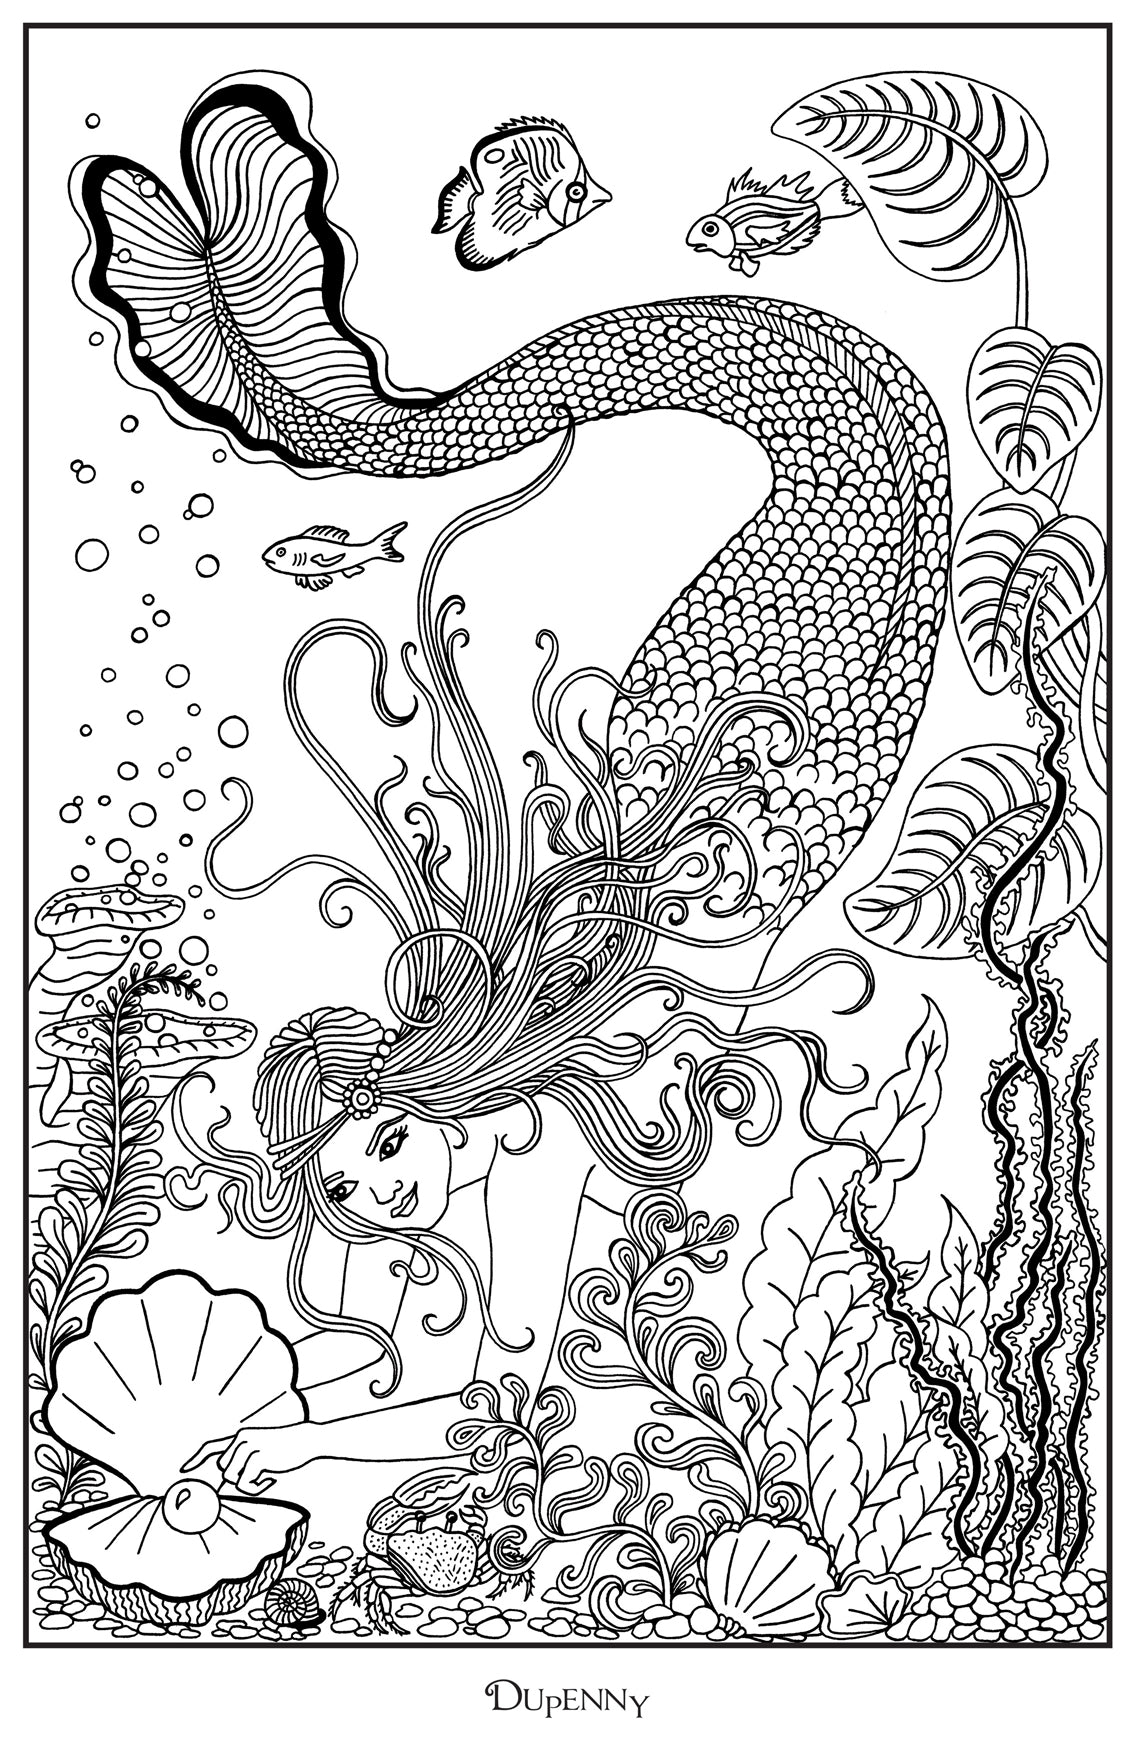 Dupenny A4 Mermaid 'Pearl' Colouring Poster FREE